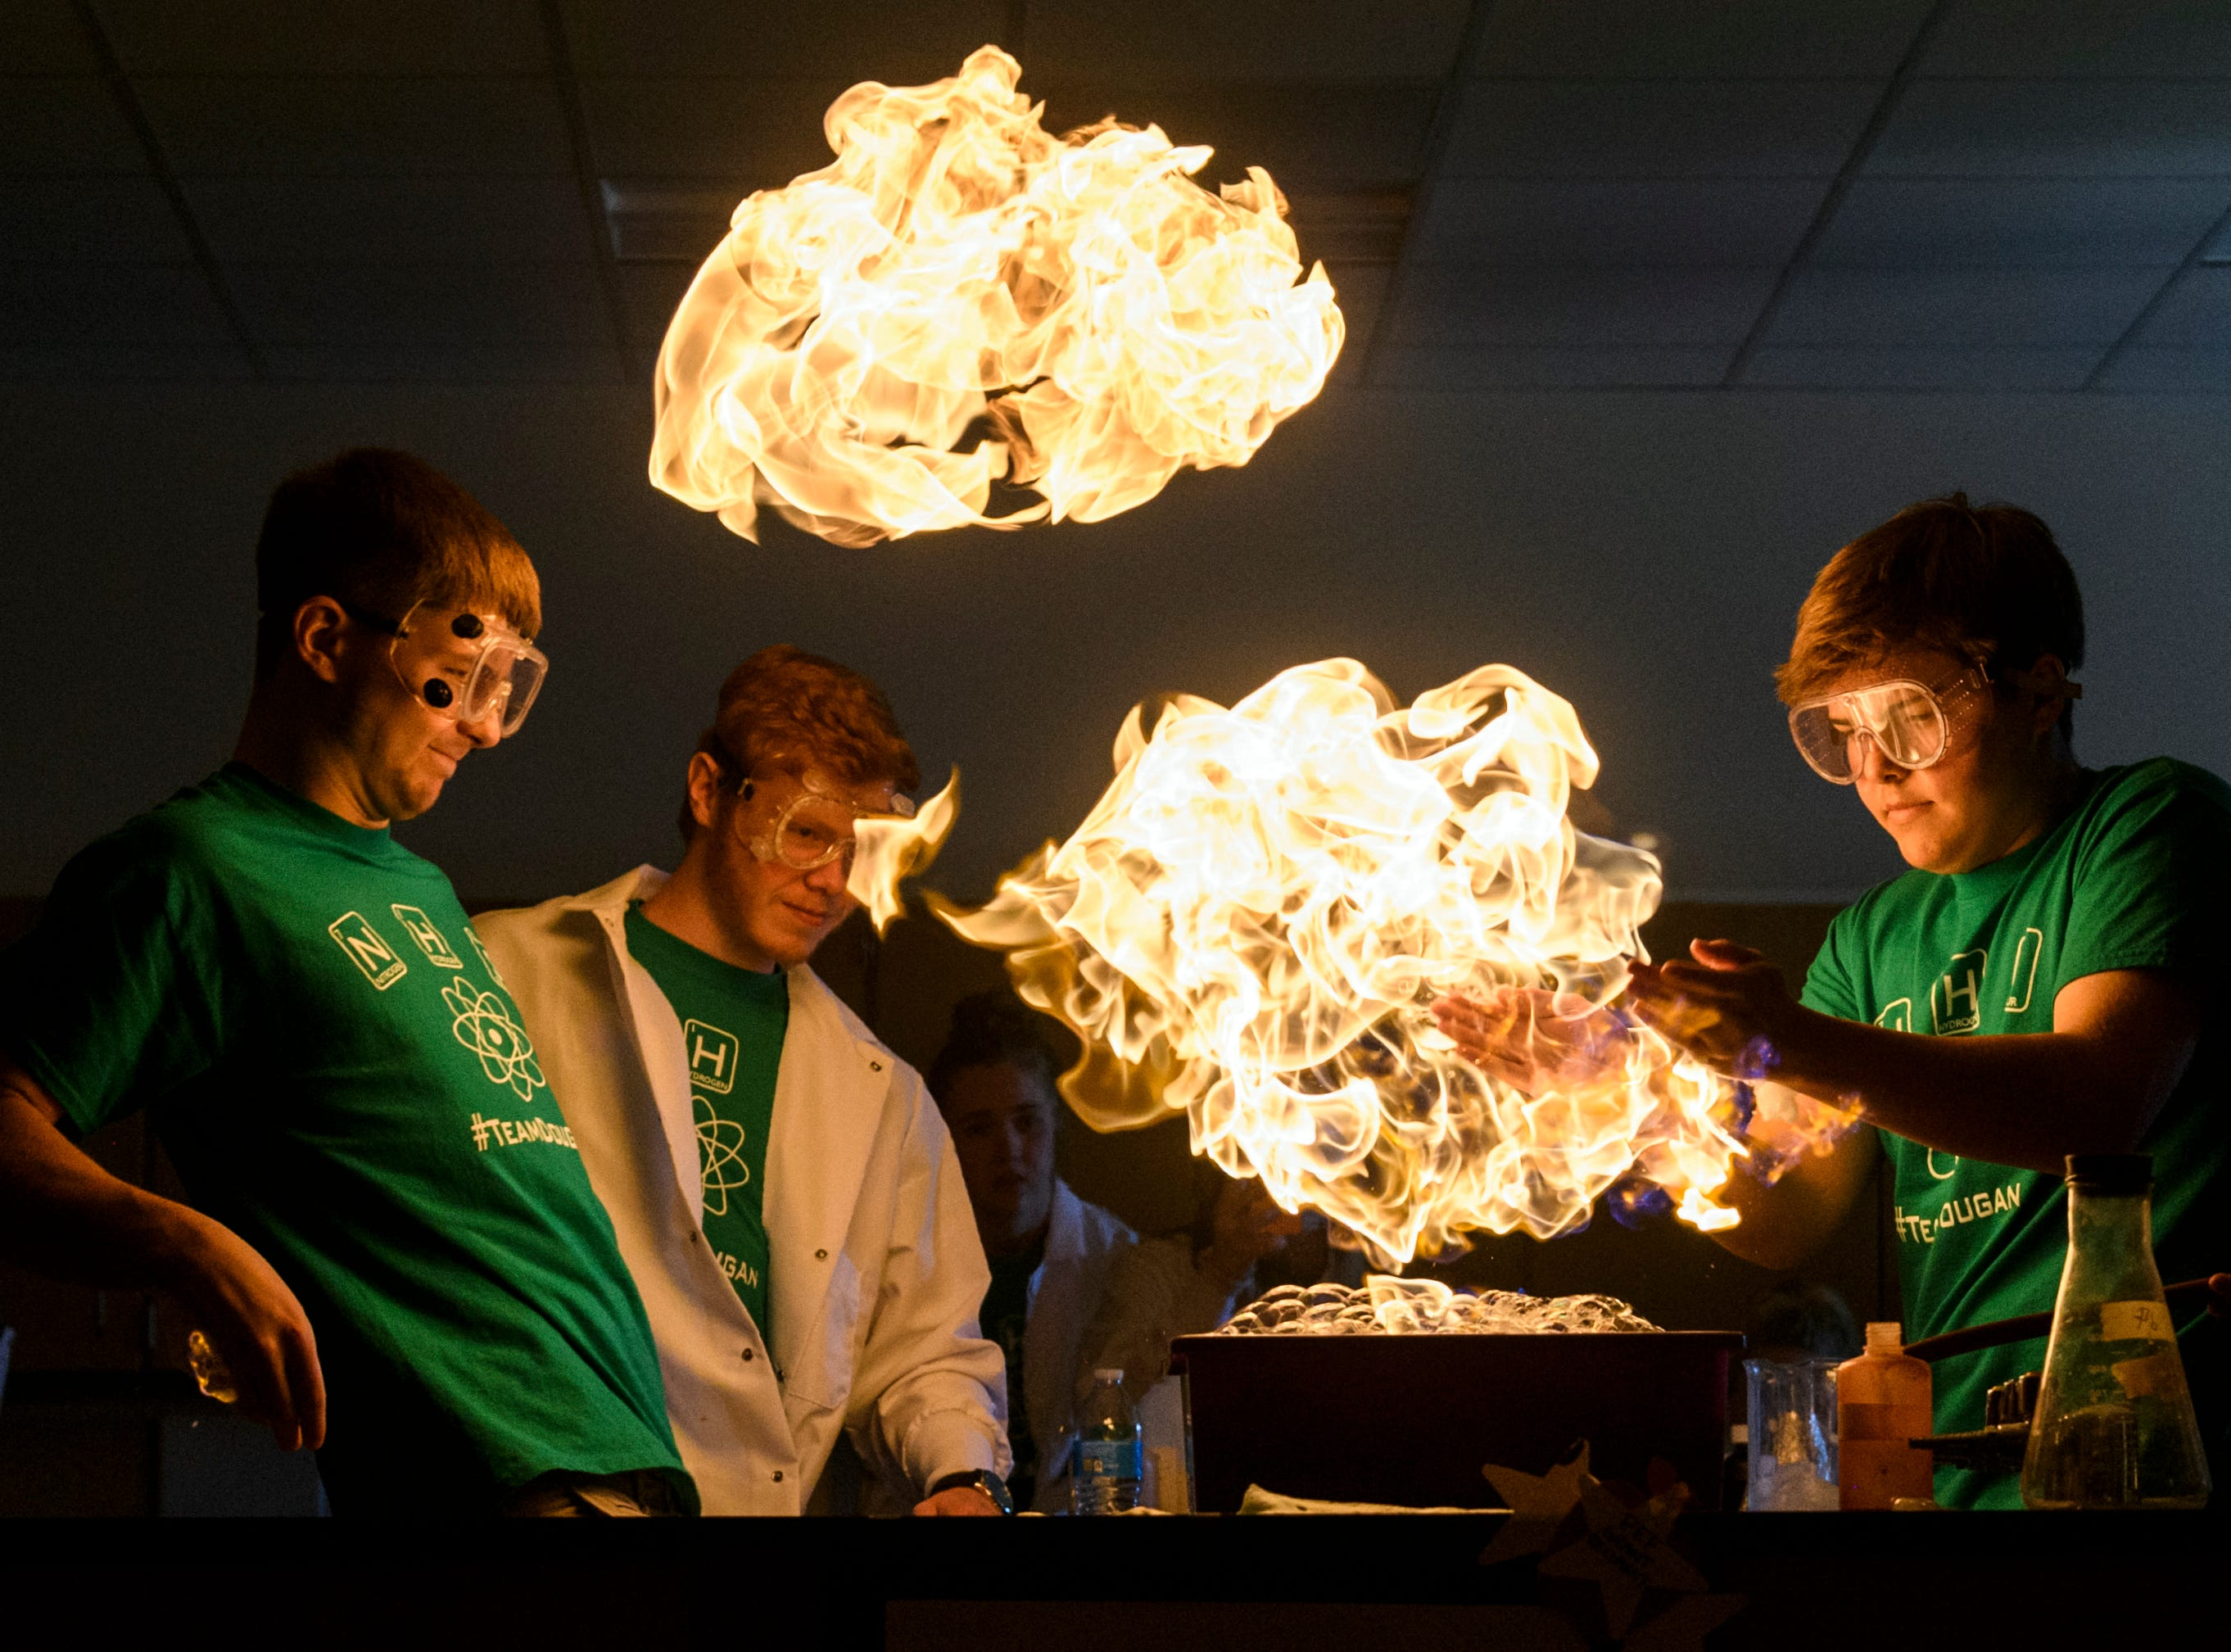 North High School seniors Ryan Huebner (left to right), Alex Mosteller and Hatch Gerth perform a methane gas bubble experiment during a science show put on for visiting Delaware Elementary School first-graders inside a science lab at the high school in Evansville, Ind., Wednesday, April 18, 2018. Throughout the school year, NHS Science teacher Brian Dougan's classes have put on a student-run show for all of their feeder schools, which also includes Evans Elementary, Oak Hill Elementary, Scott Elementary, Vogel Elementary and North Junior High School.